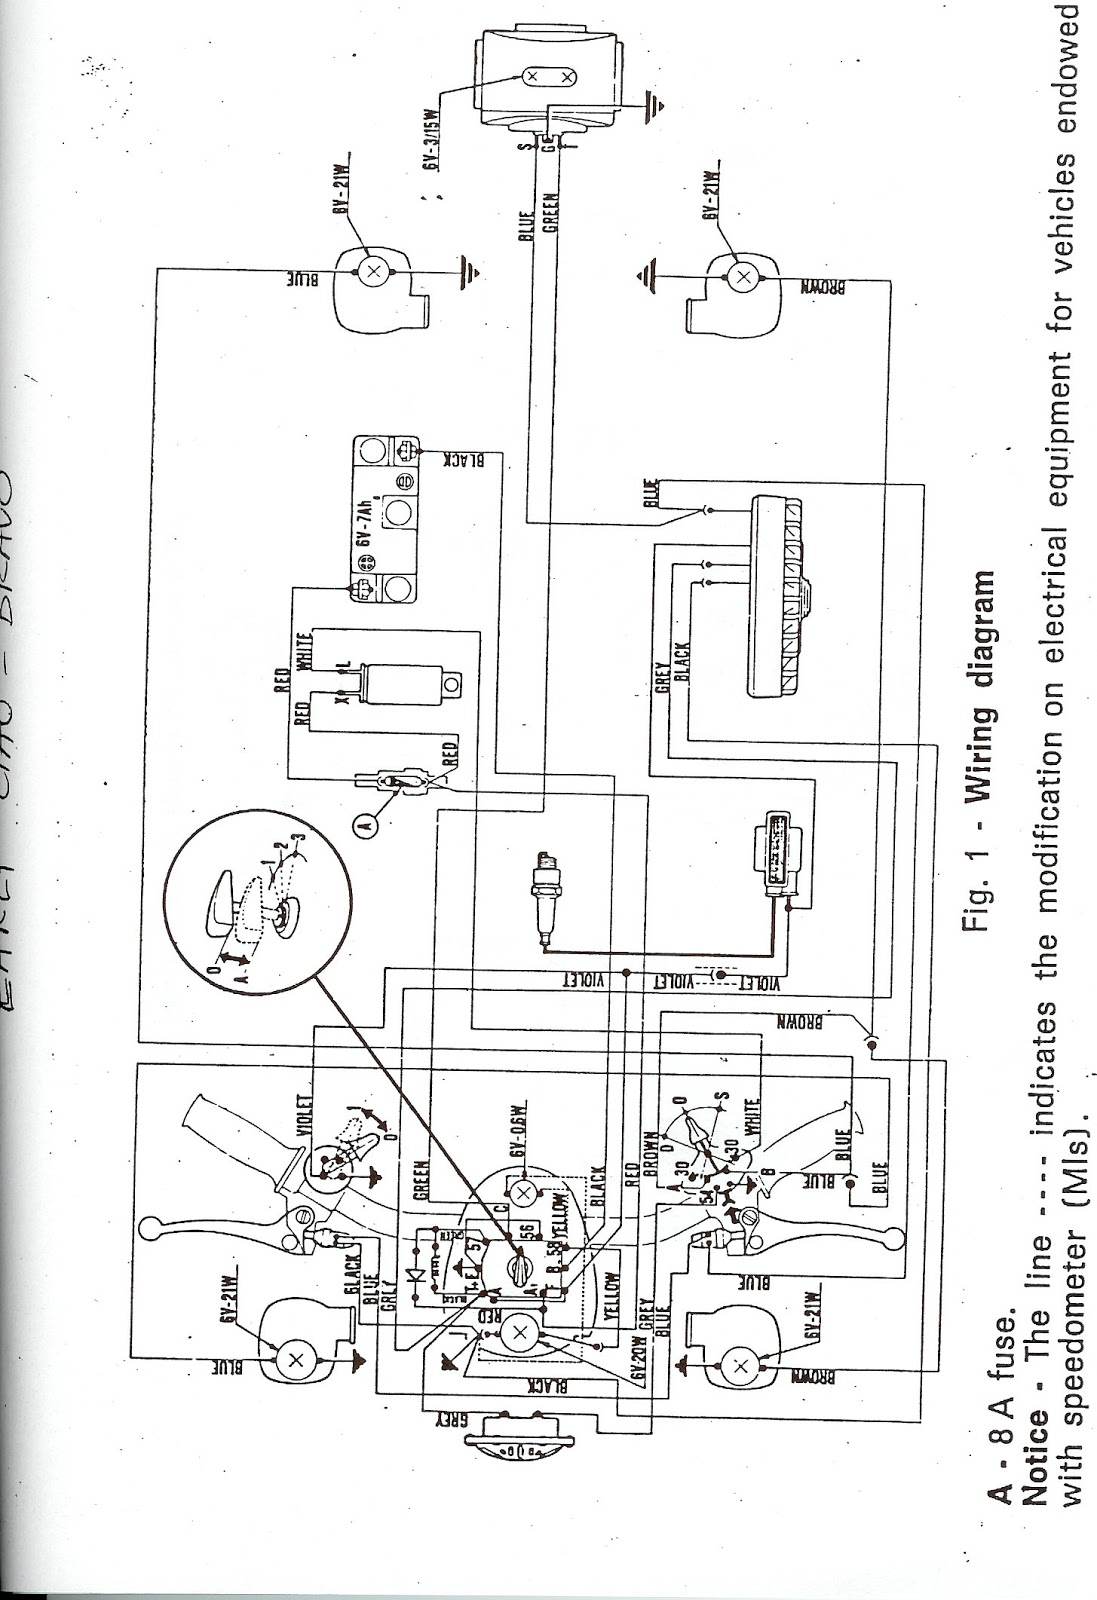 1149484169_vespa_early_ciao_bravo deadped vespa wiring in a nutshell vespa wiring diagram at suagrazia.org